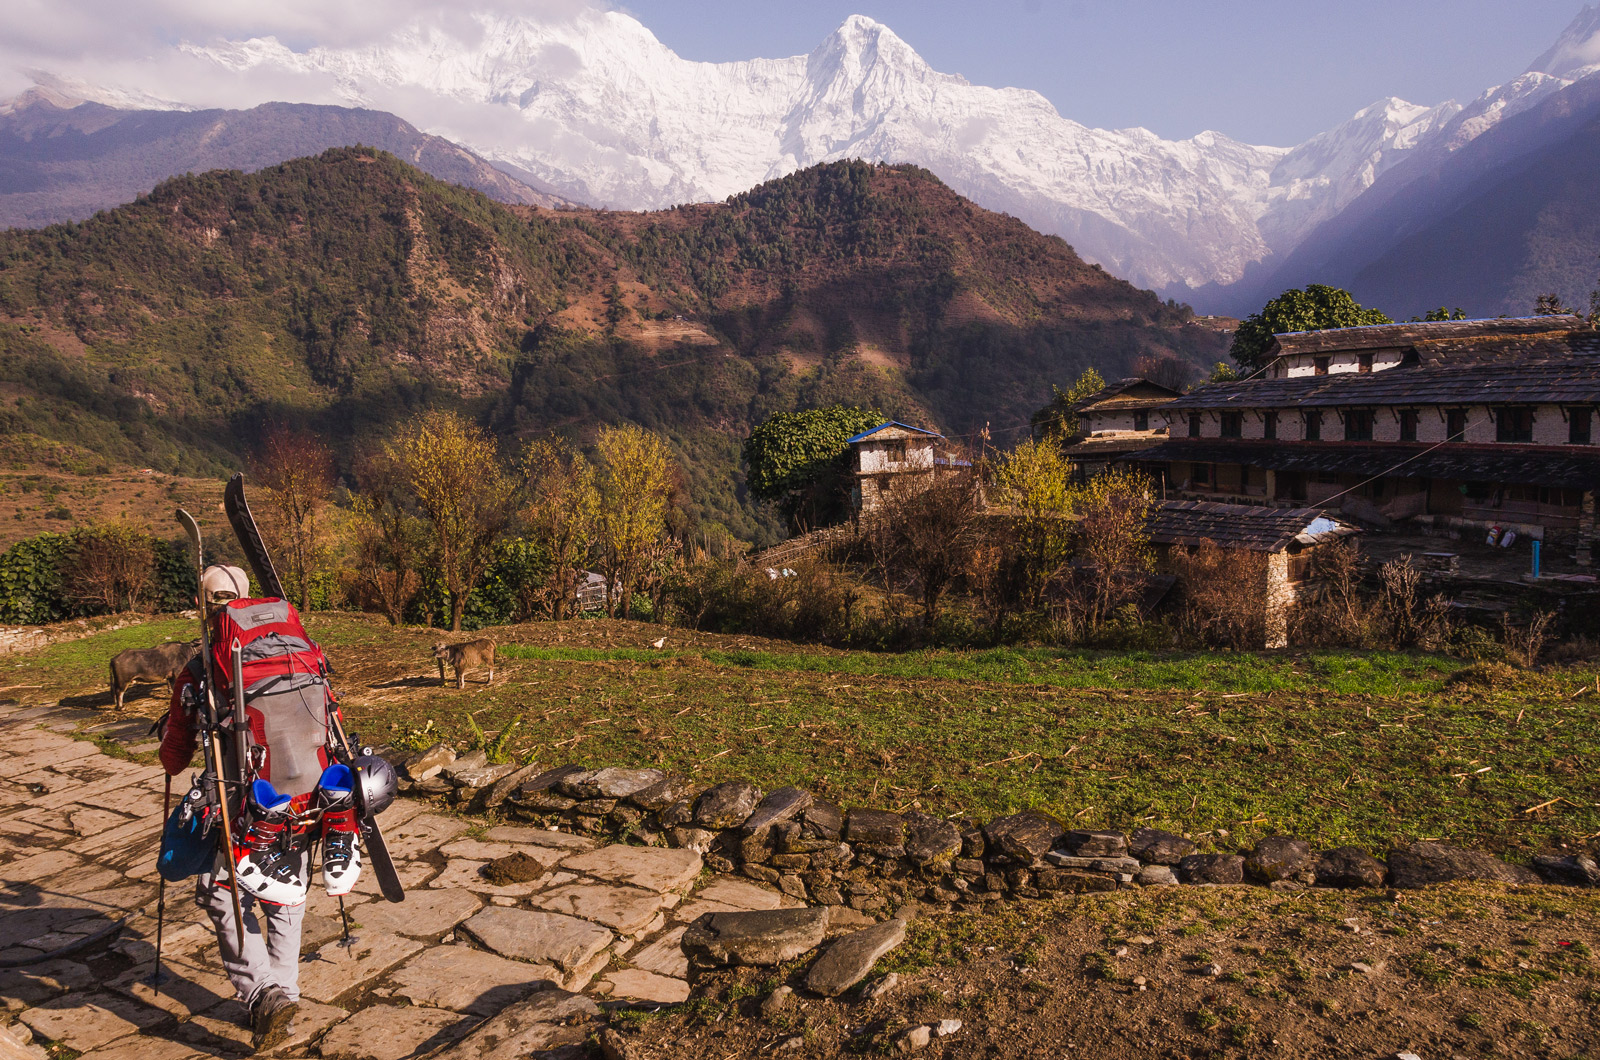 Trekking through a Himalayan village.